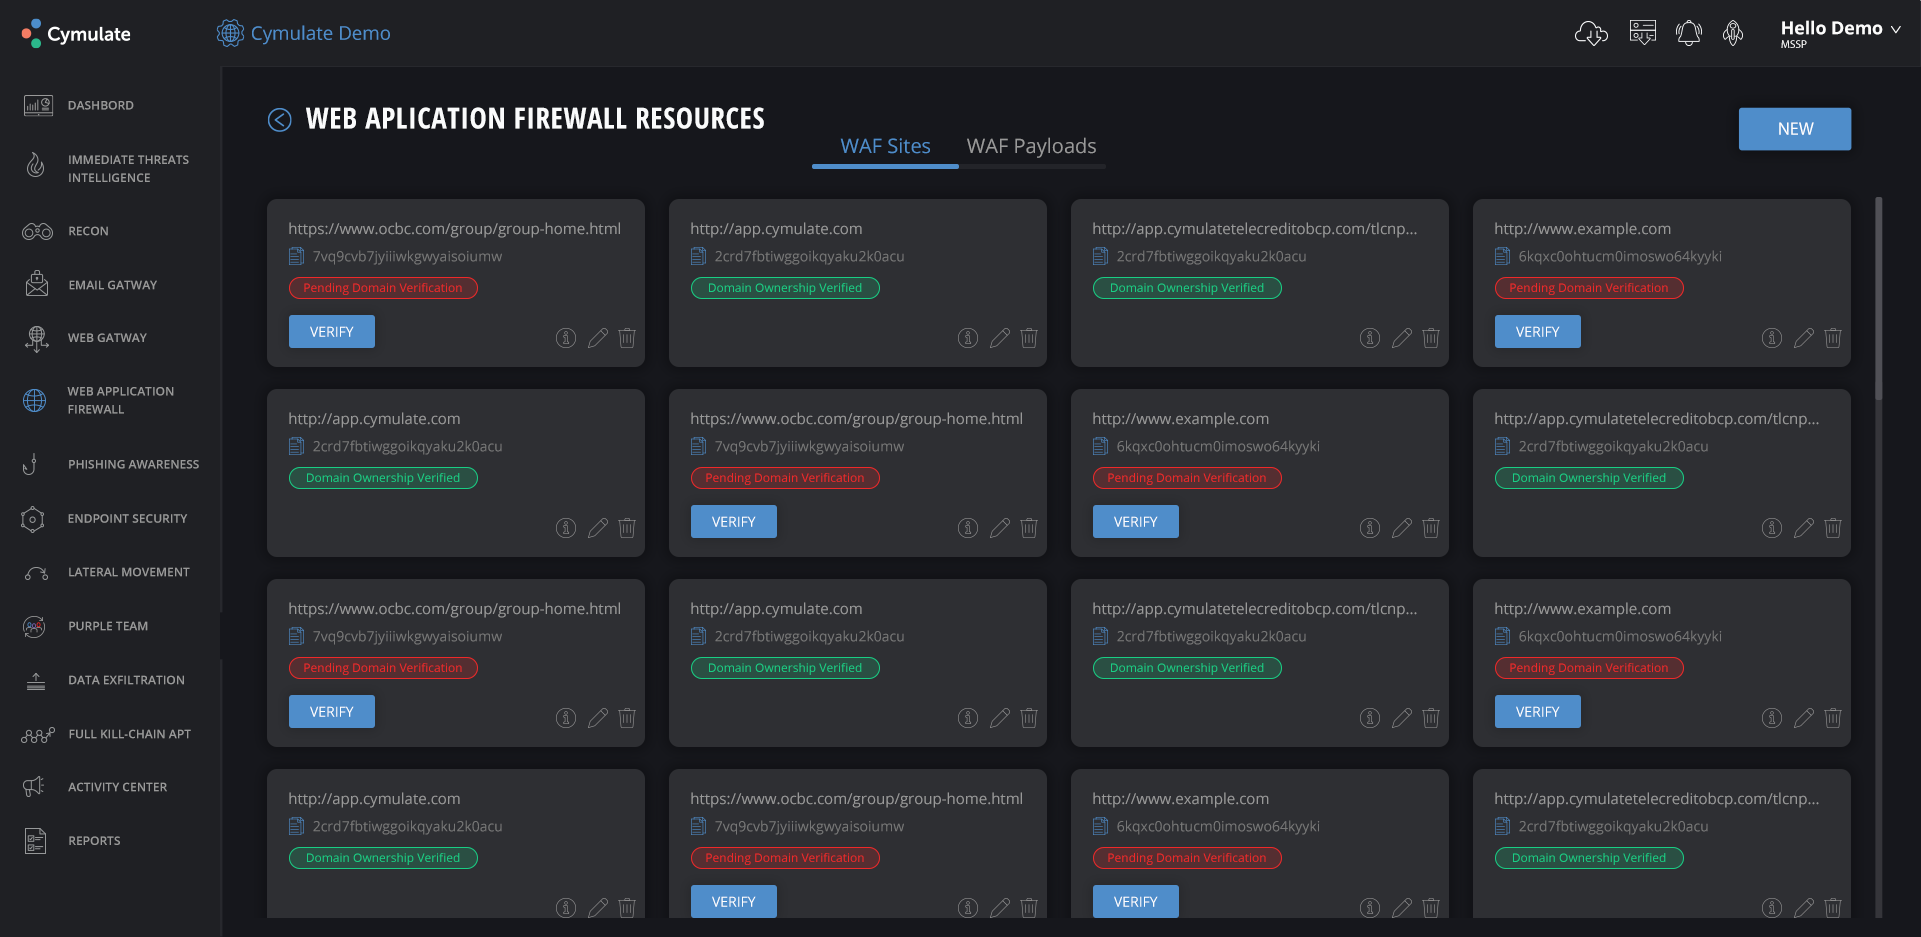 Improved threat response through automated evaluation, prioritization, real-time reports, and guided responses